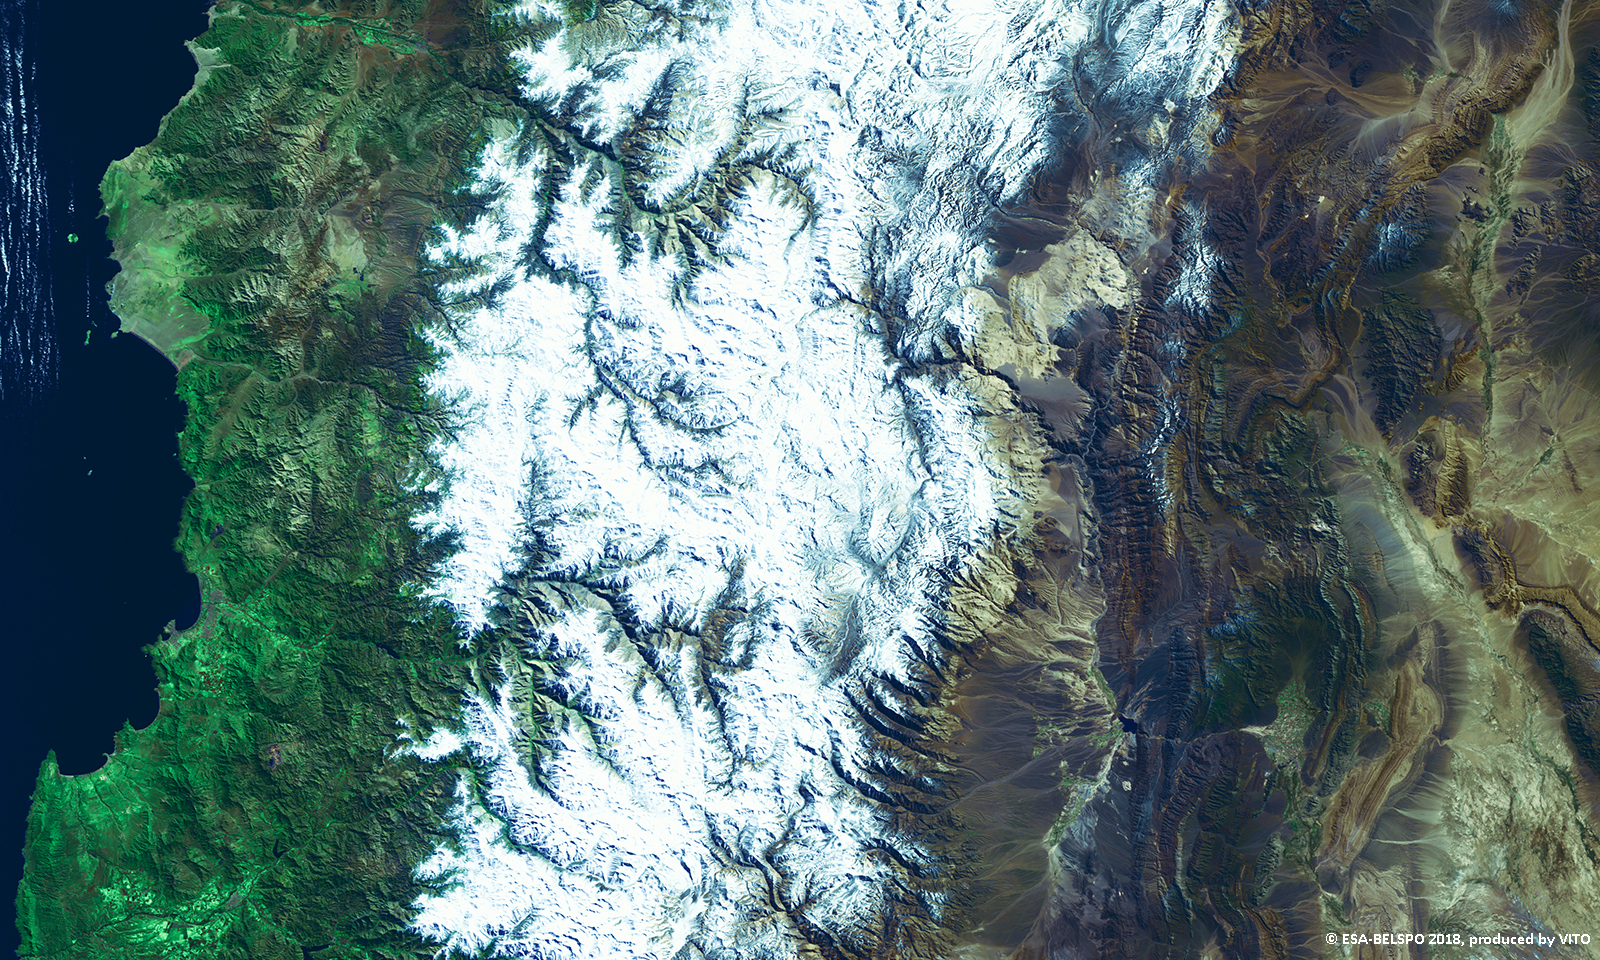 the Andes, Chile-Argentina